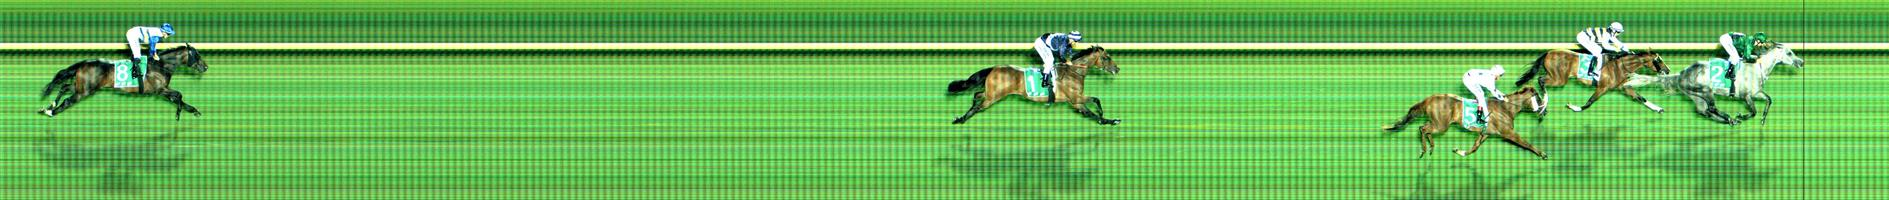 Cranbourne Race 6 No.3 San Remo @ $2 (1.5 UNITS WIN)   Result : 2nd at SP $1.80. Lead until 500m out when overtaken by the eventual winner, Benall ($4.60 SP), but San Remo kept to its task in the straight to finish 2nd by a length. Outcome -1.50 Units.